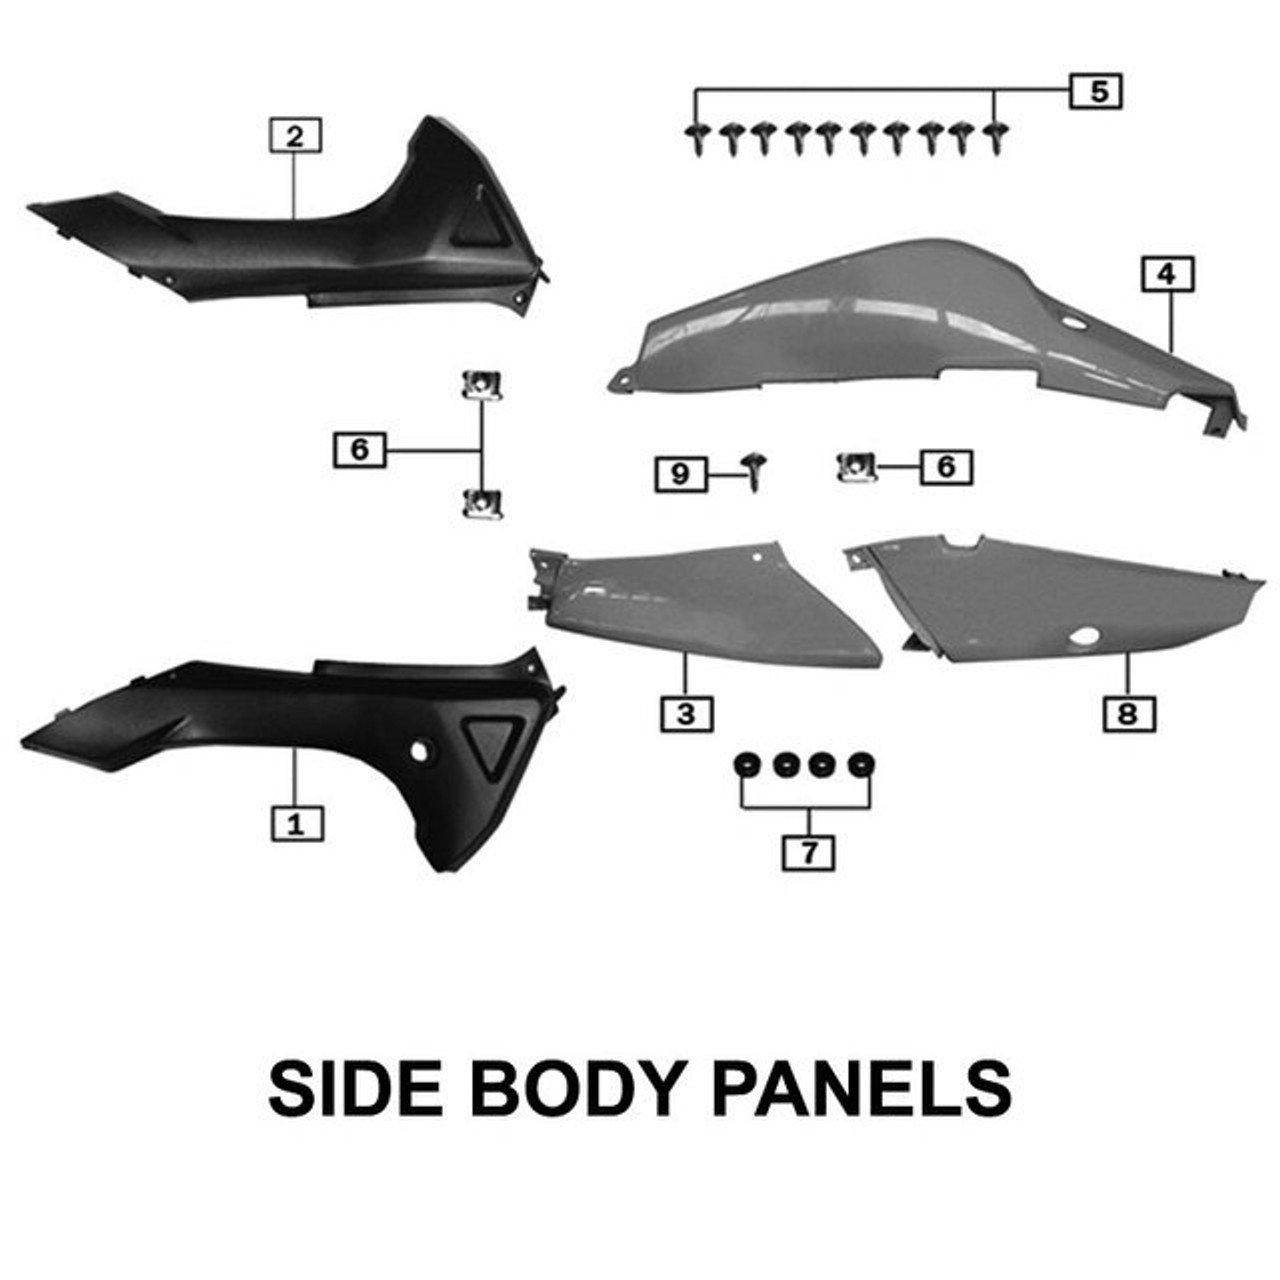 BODY PANELS, SIDE